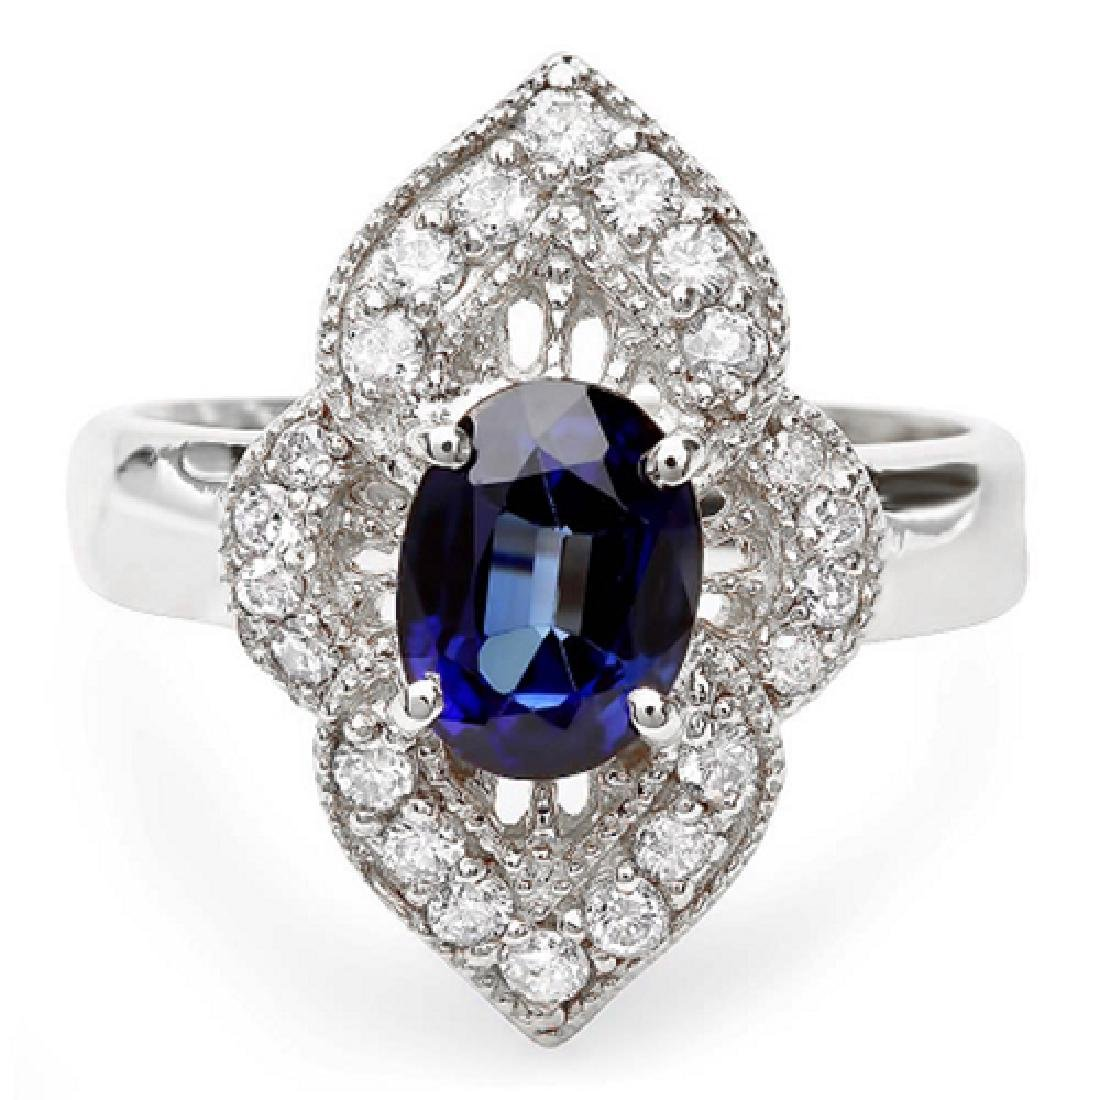 2.40 Carat Natural Sapphire 18K Solid White Gold